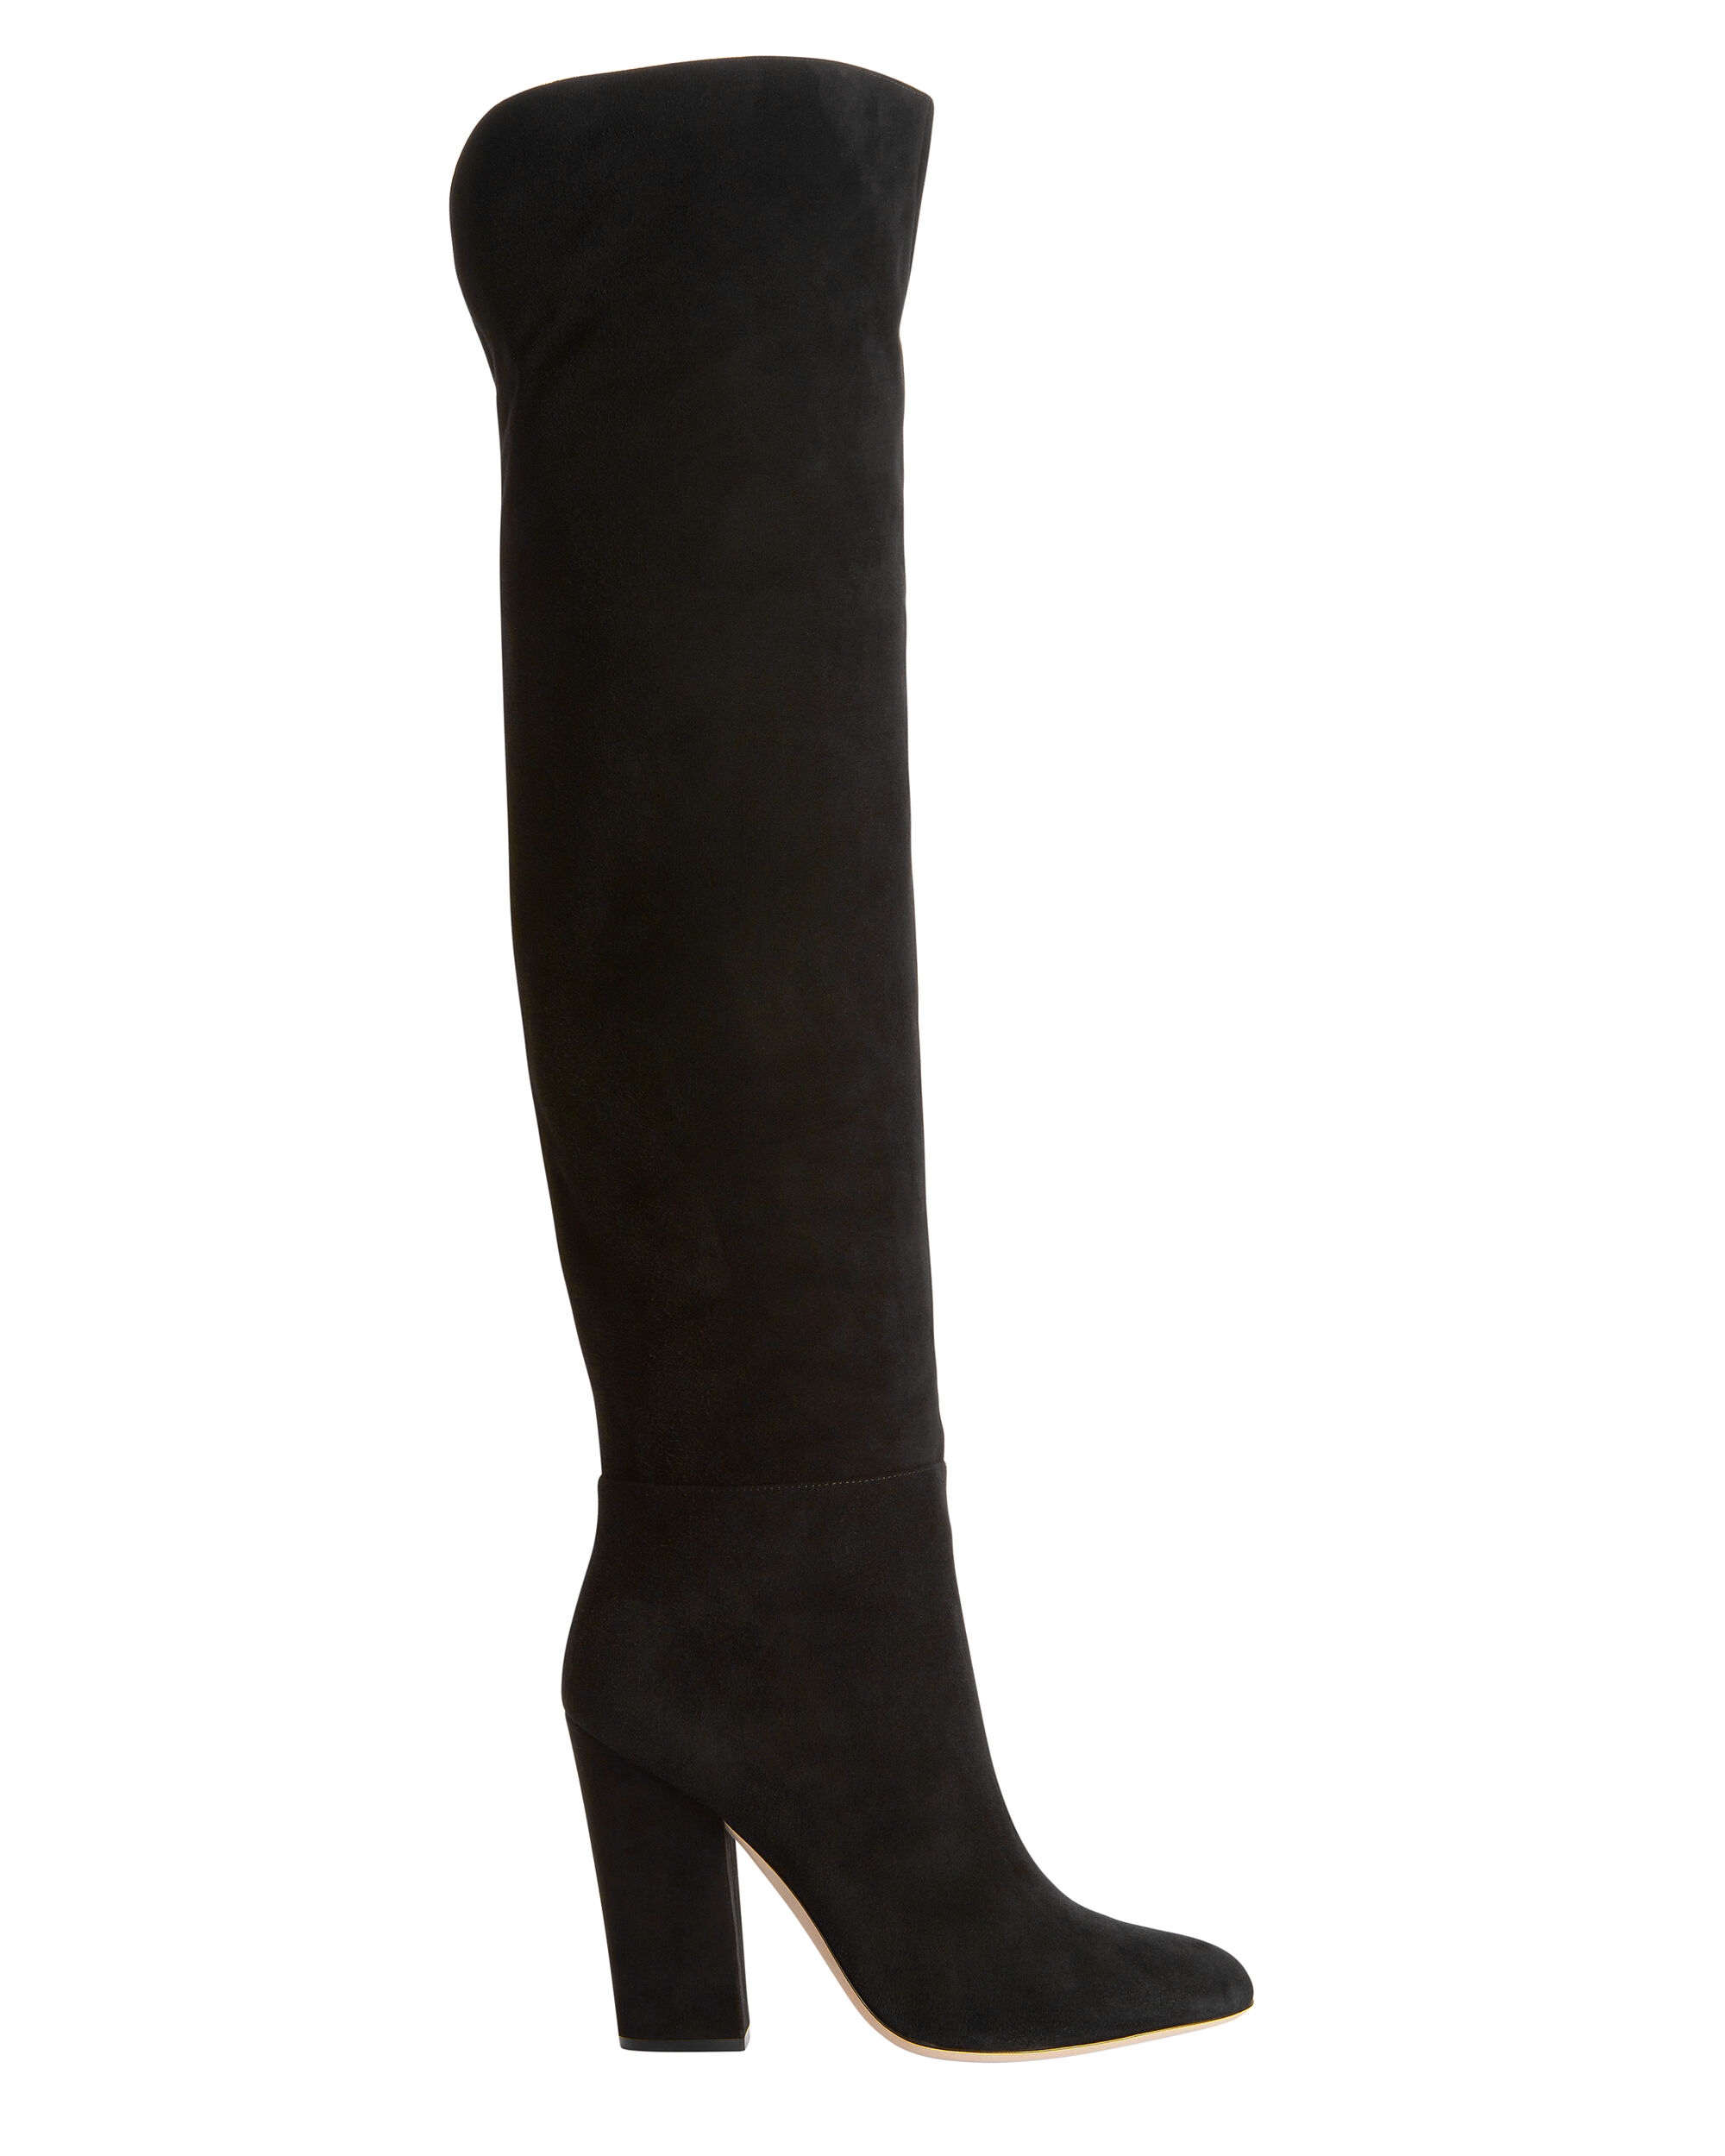 Virginia Suede Over-The-Knee Boots, BLACK, hi-res